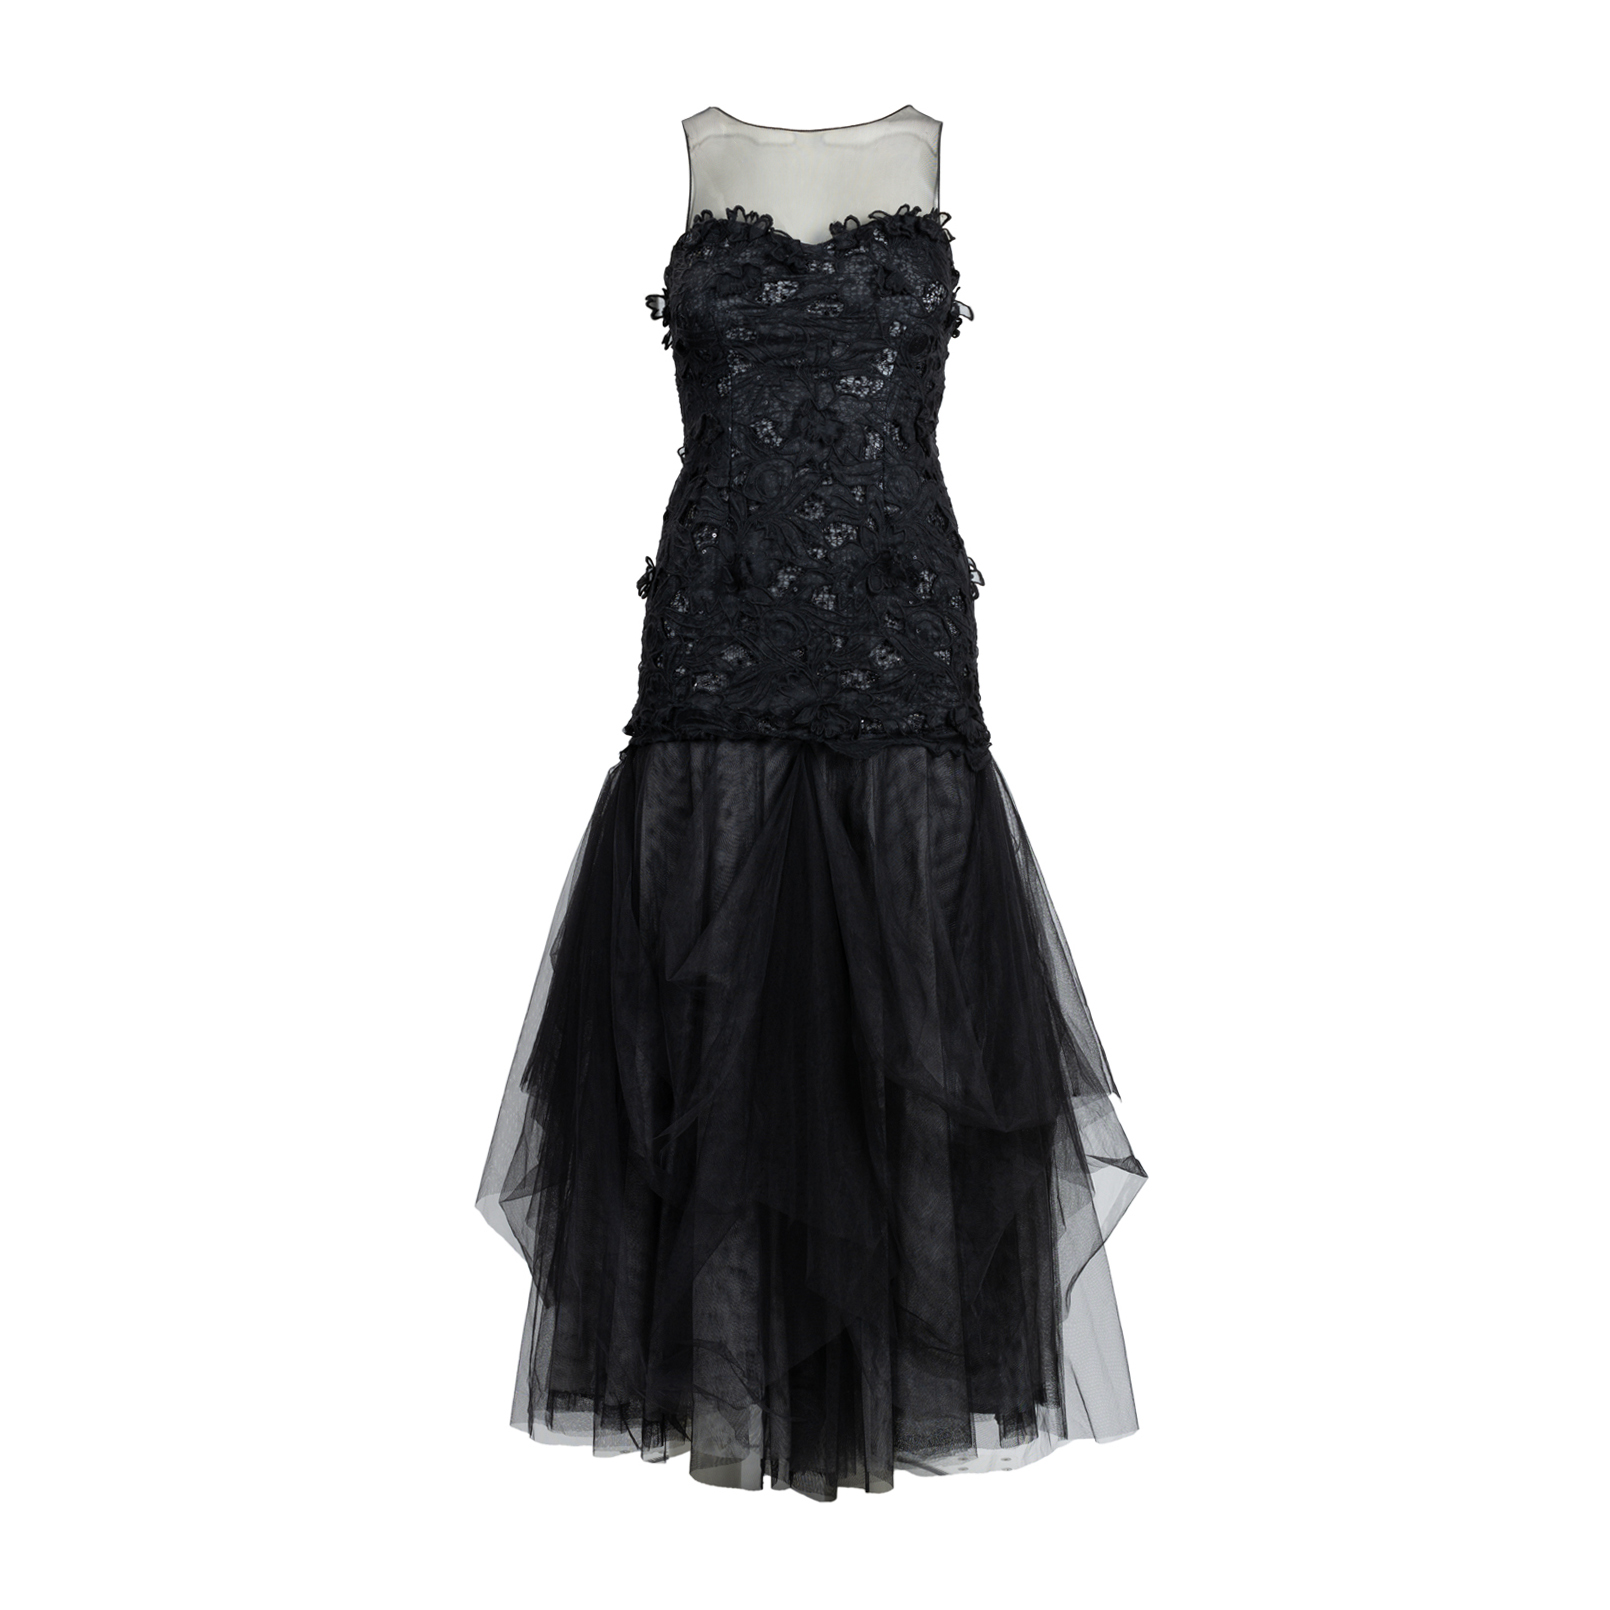 e695617238 Authentic Second Hand BCBG Max Azria Tulle and Appliqué Gown  (PSS-515-00114)